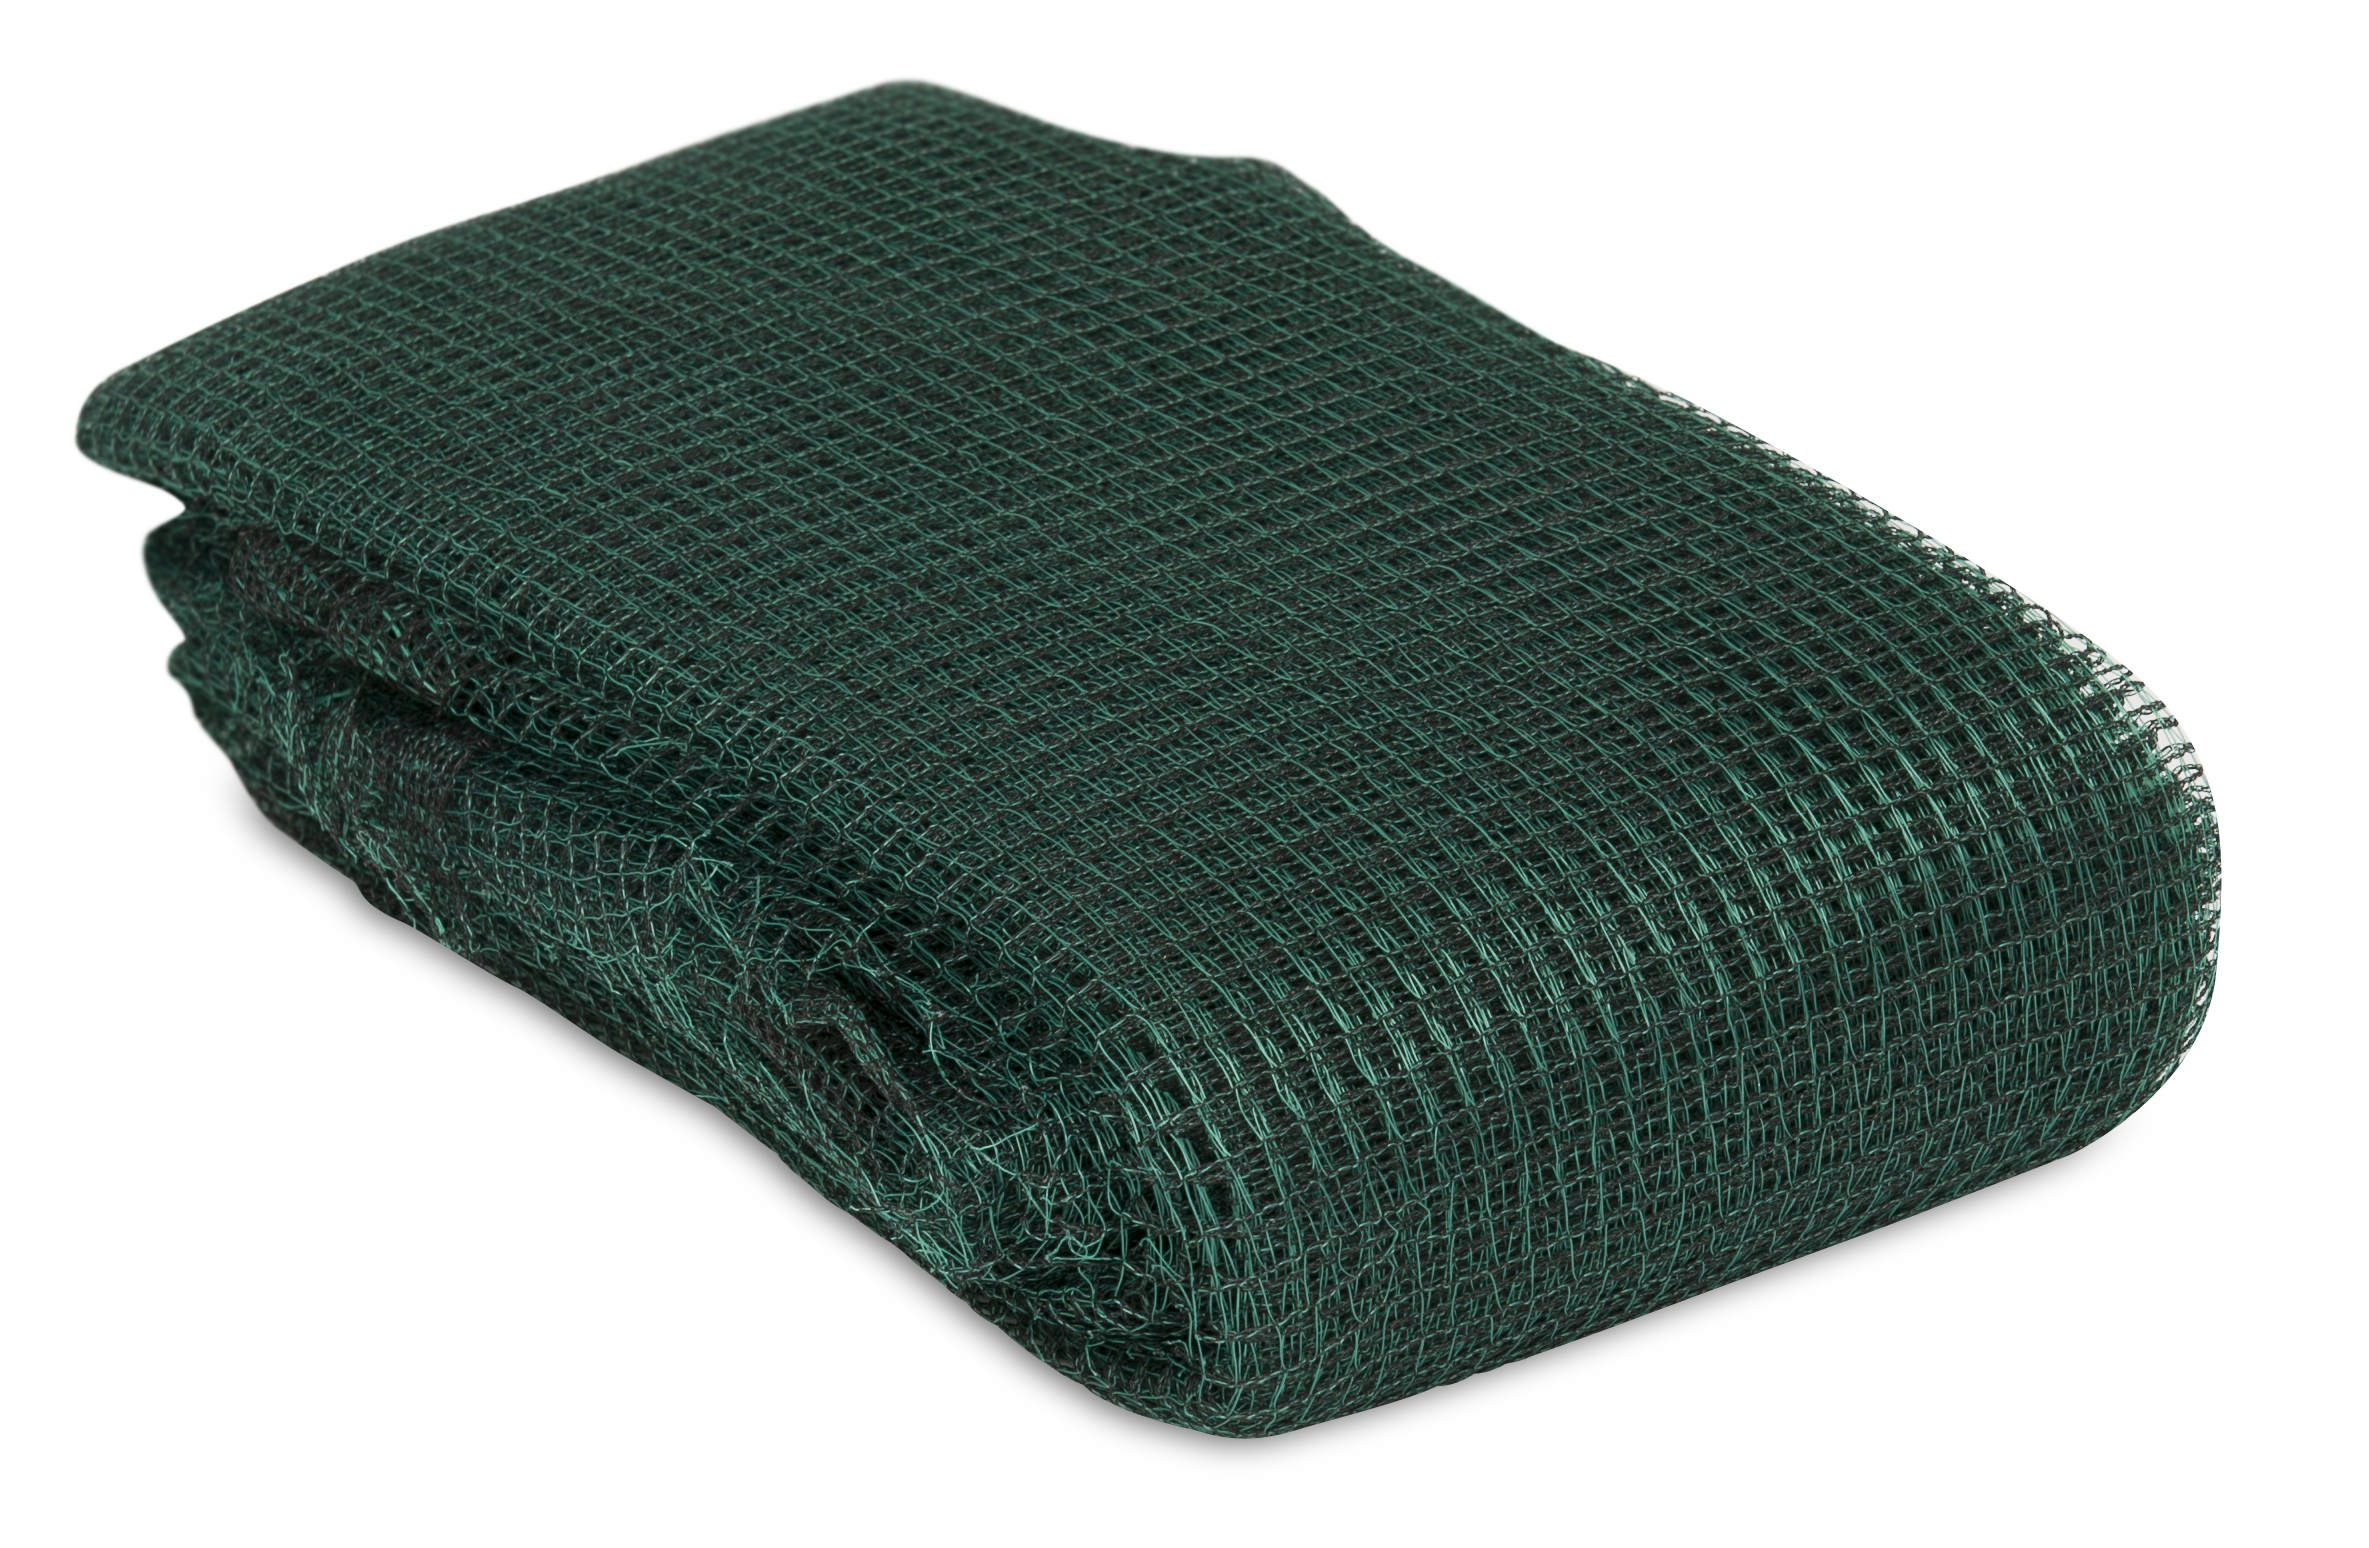 Filet de protection paragrêle, 5 x 4 m Vert